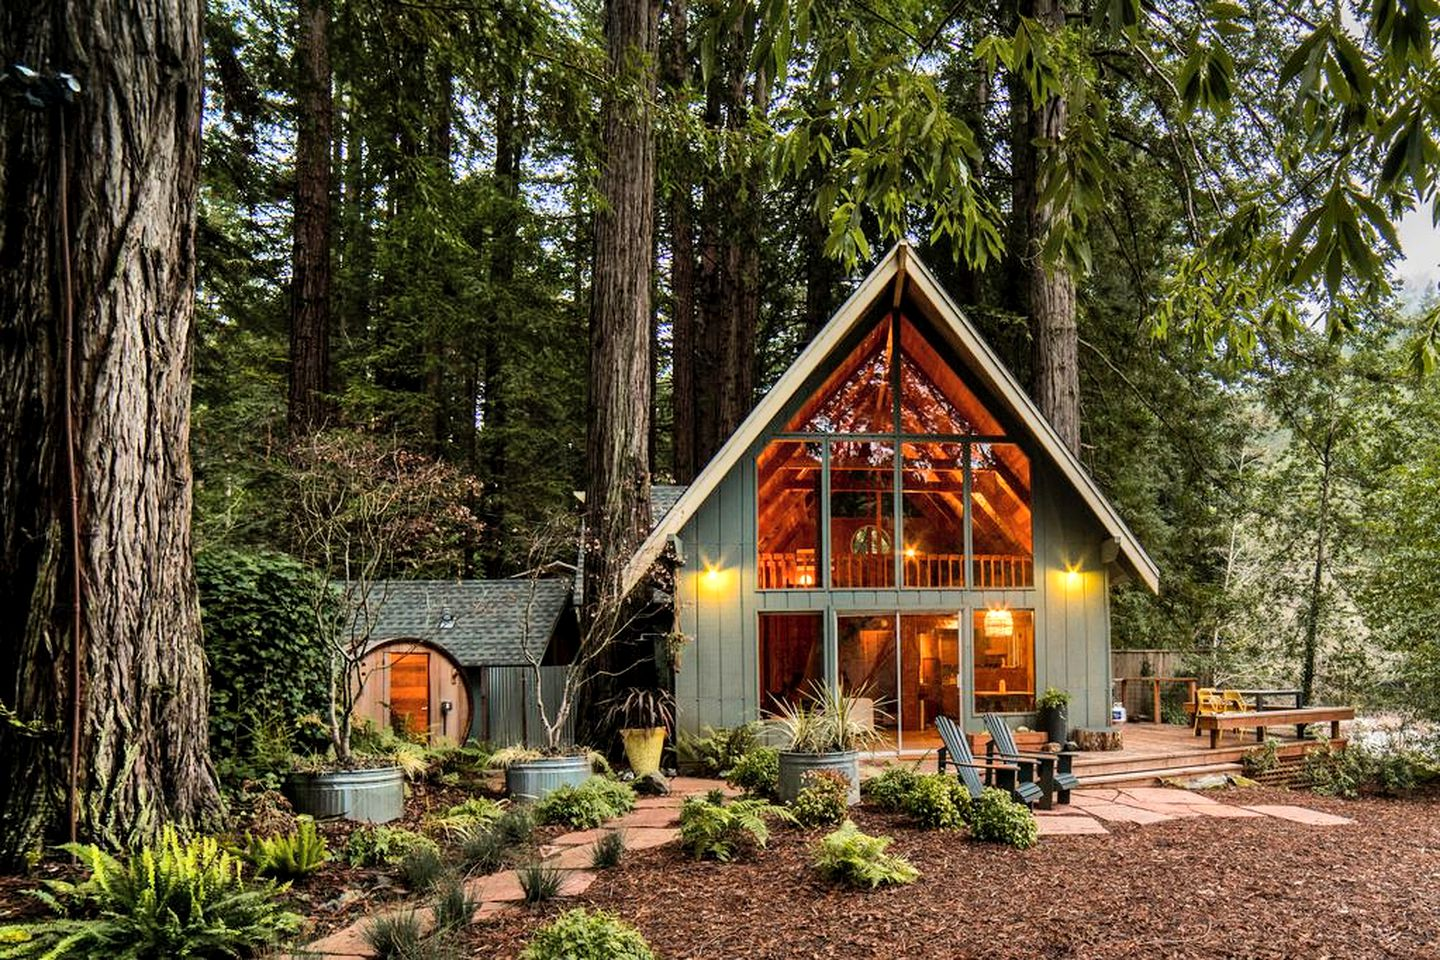 Charming California cabin rental overlooking Austin Creek in California with big glass pane exterior with lighting and deck chairs outside.